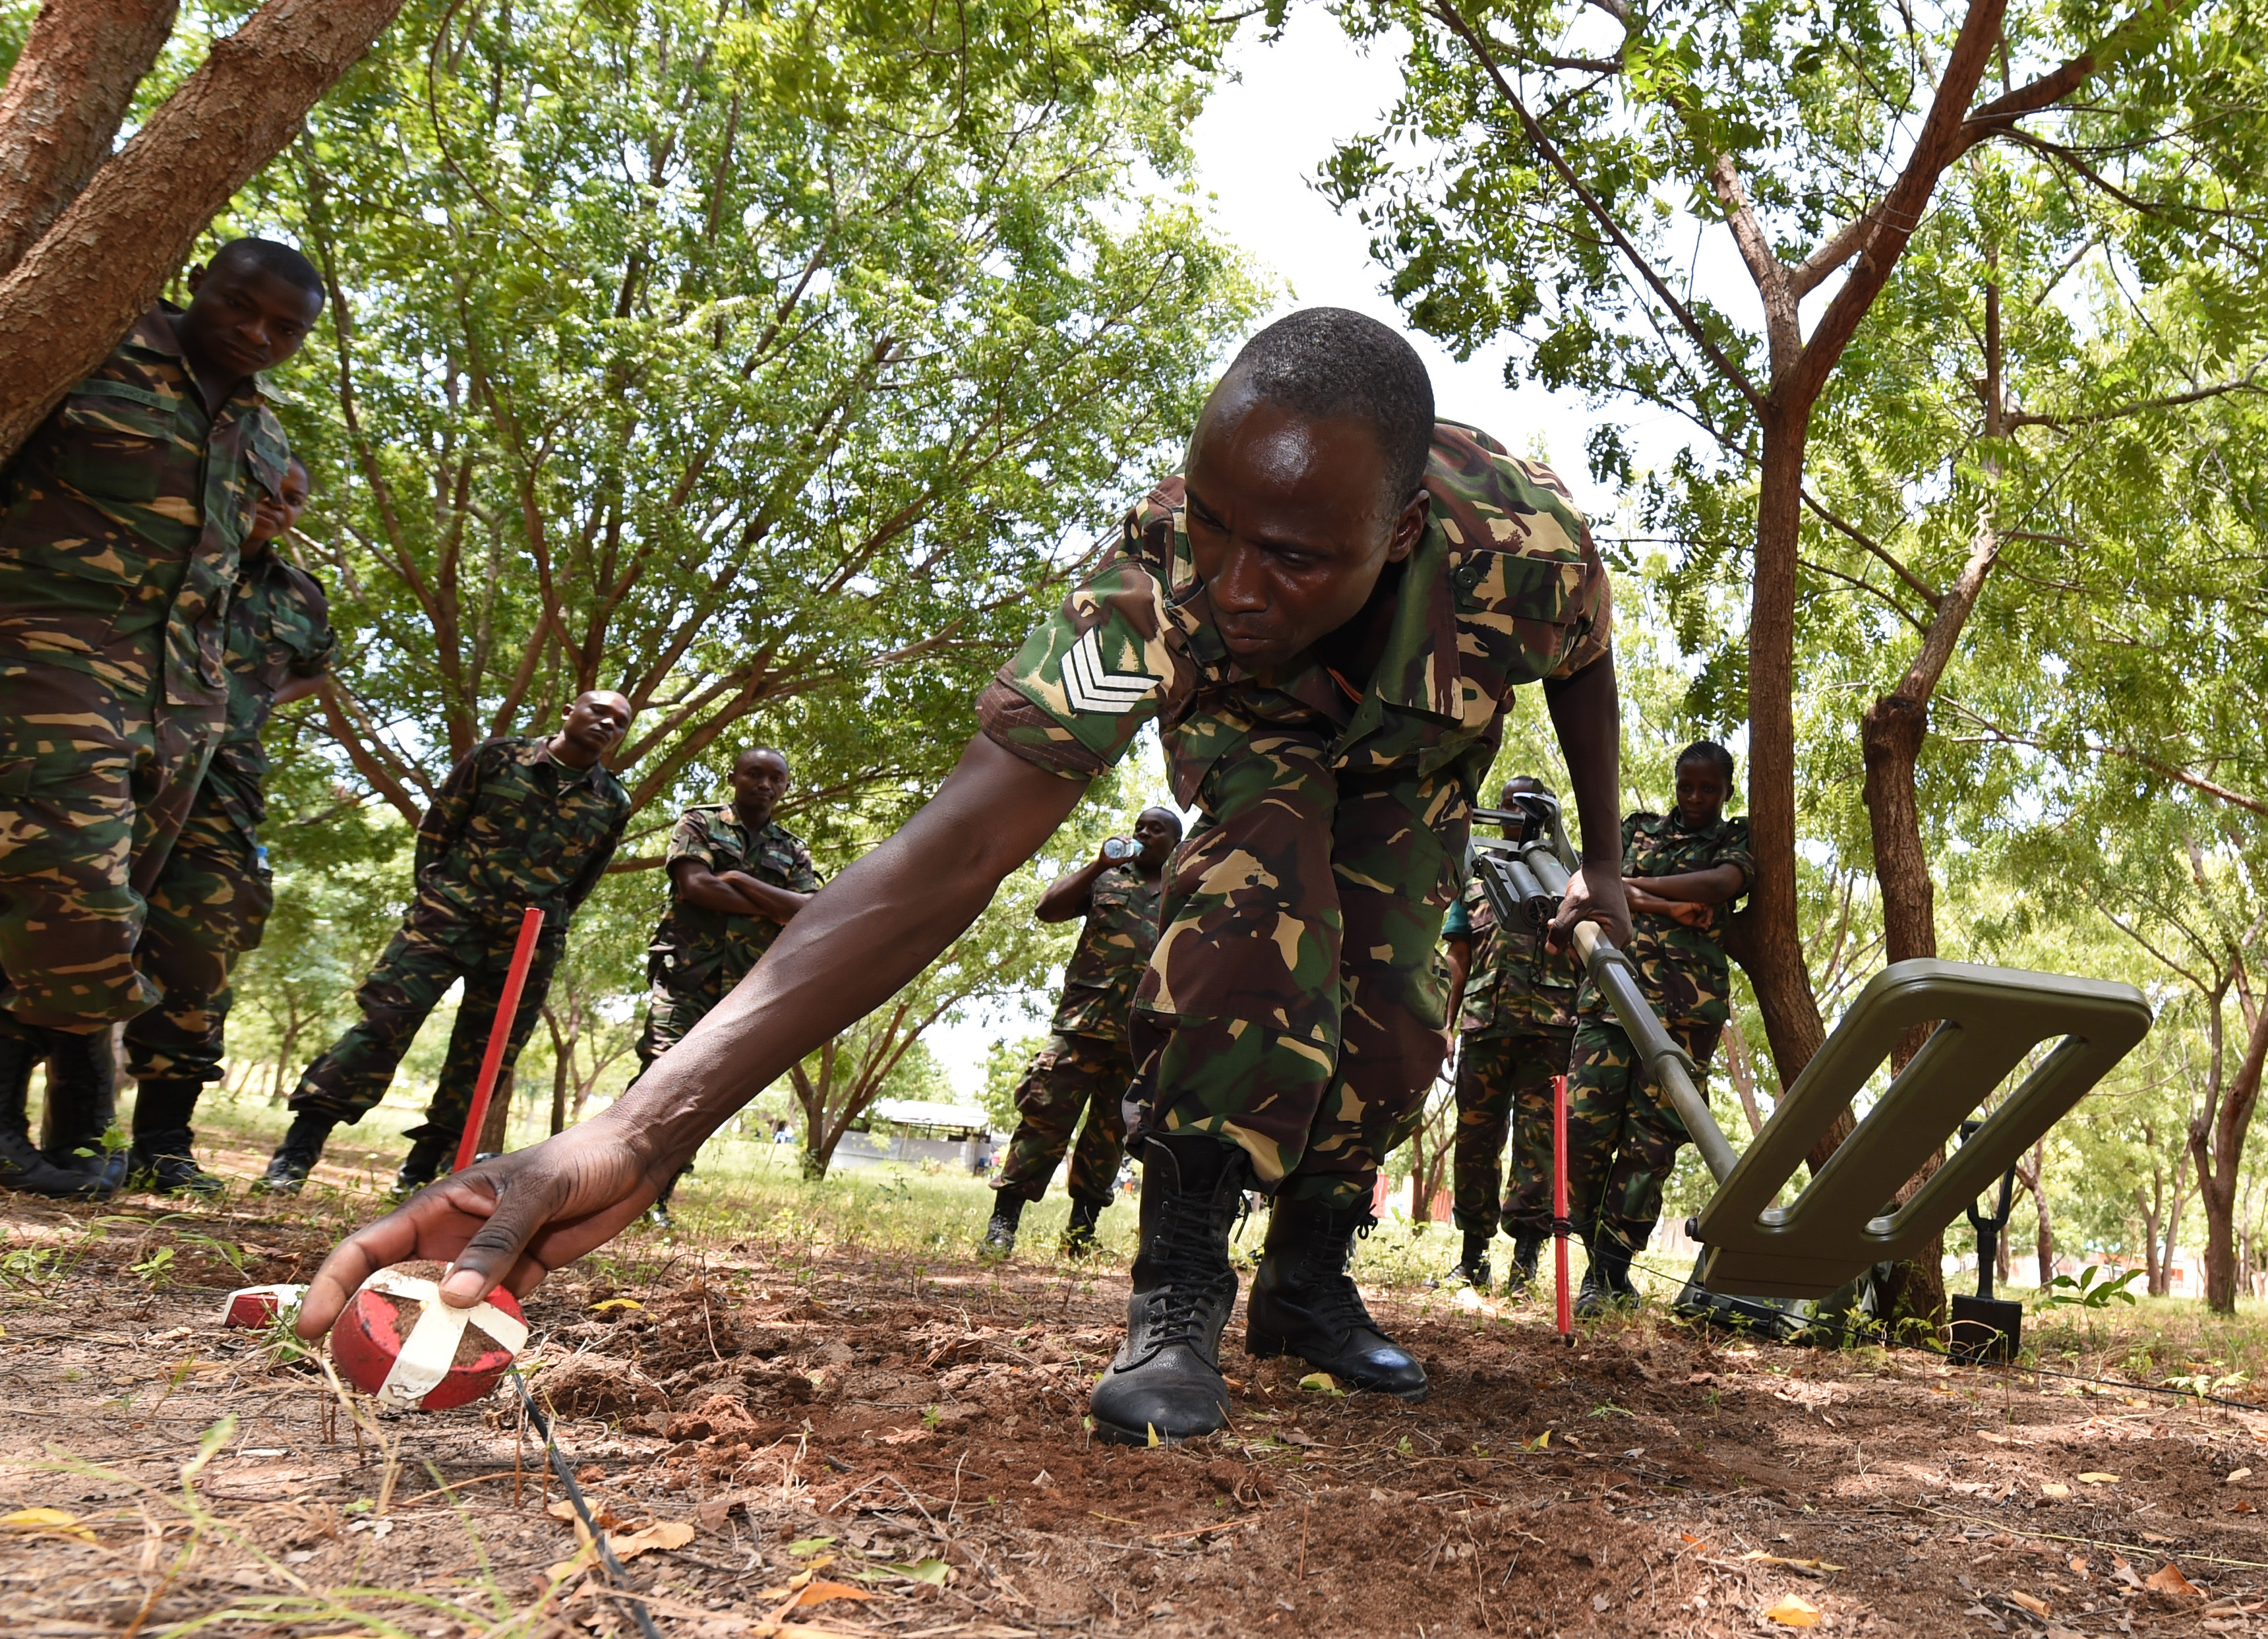 Sgt. Gaudence Siame, Tanzania People's Defense Force ammunition technician, places a metal shape aside during a metal detector familiarization class at the Peace Keeping Training Center in Dar es Salaam, Tanzania Aug. 23, 2015. Two U.S. Navy Explosive Ordnance Disposal technicians, assigned to Combined to Joint Task Force- Horn of Africa, instructed a three-week Humanitarian Mine Action course to TPDF ammunition technicians and officers in order to increase ordnance knowledge. (U.S. Air Force photo by Senior Airman Nesha Humes)